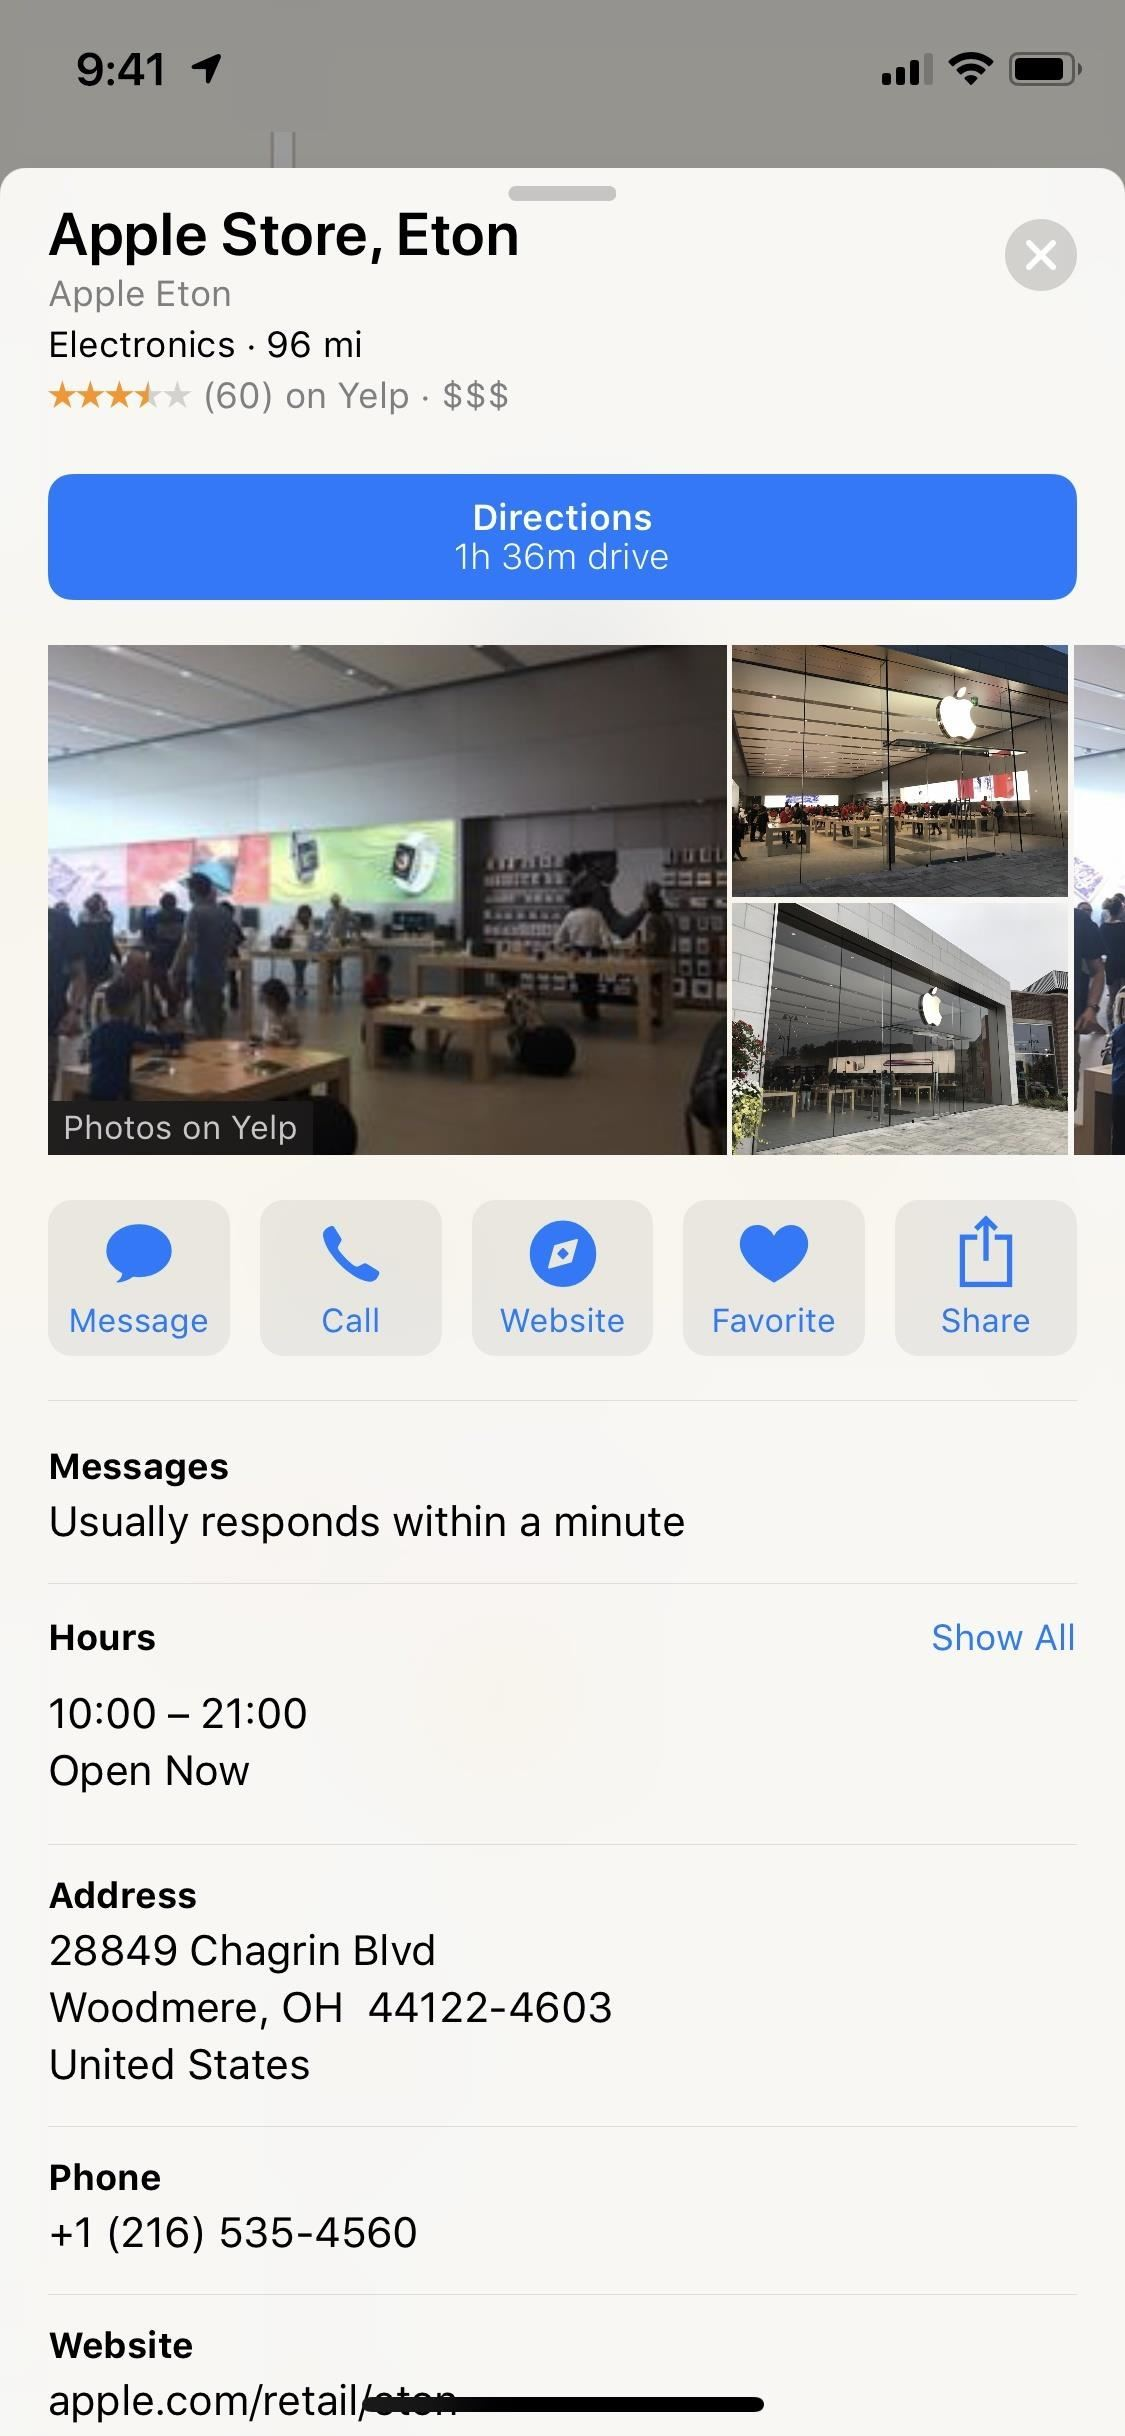 13 Features and Modifications of Apple Maps in iOS 13 You Need to Know About